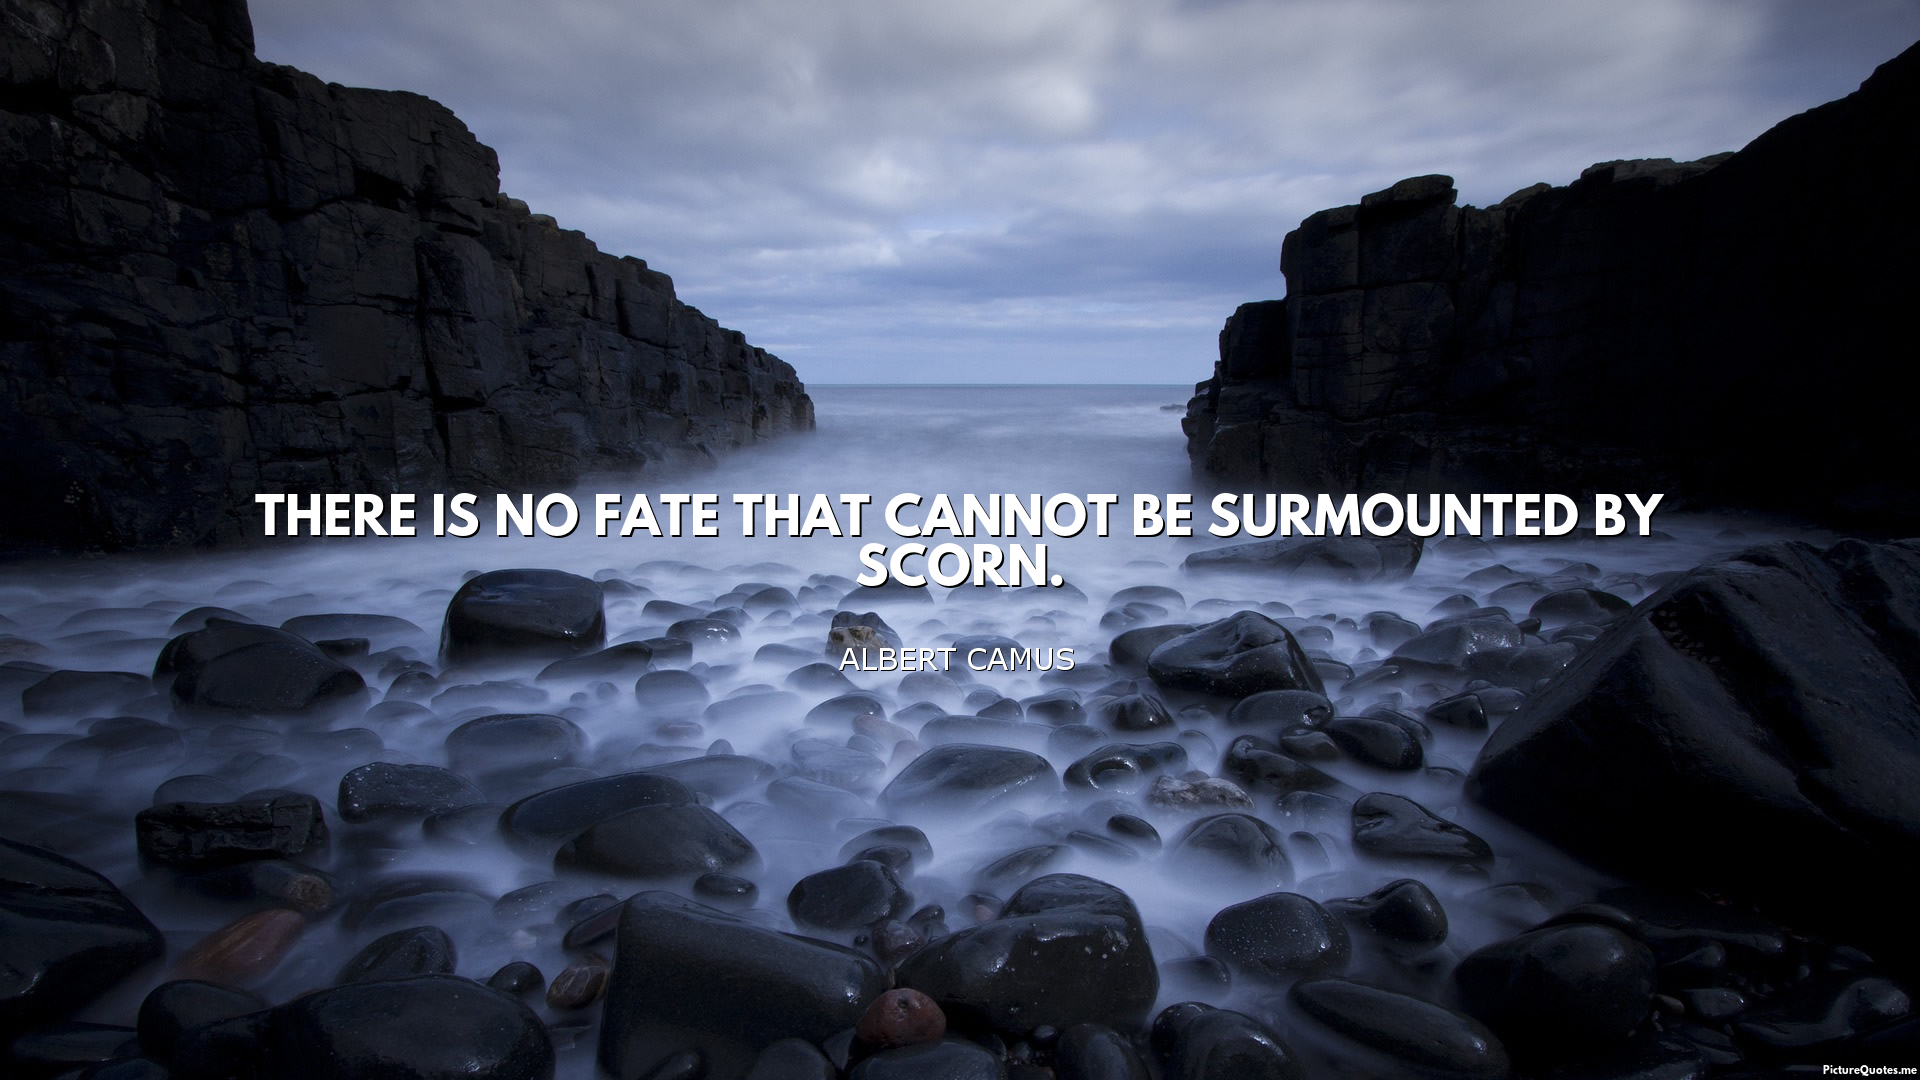 Albert camus quote about unique normal energy different - There Is No Fate That Cannot Be Surmounted By Scorn